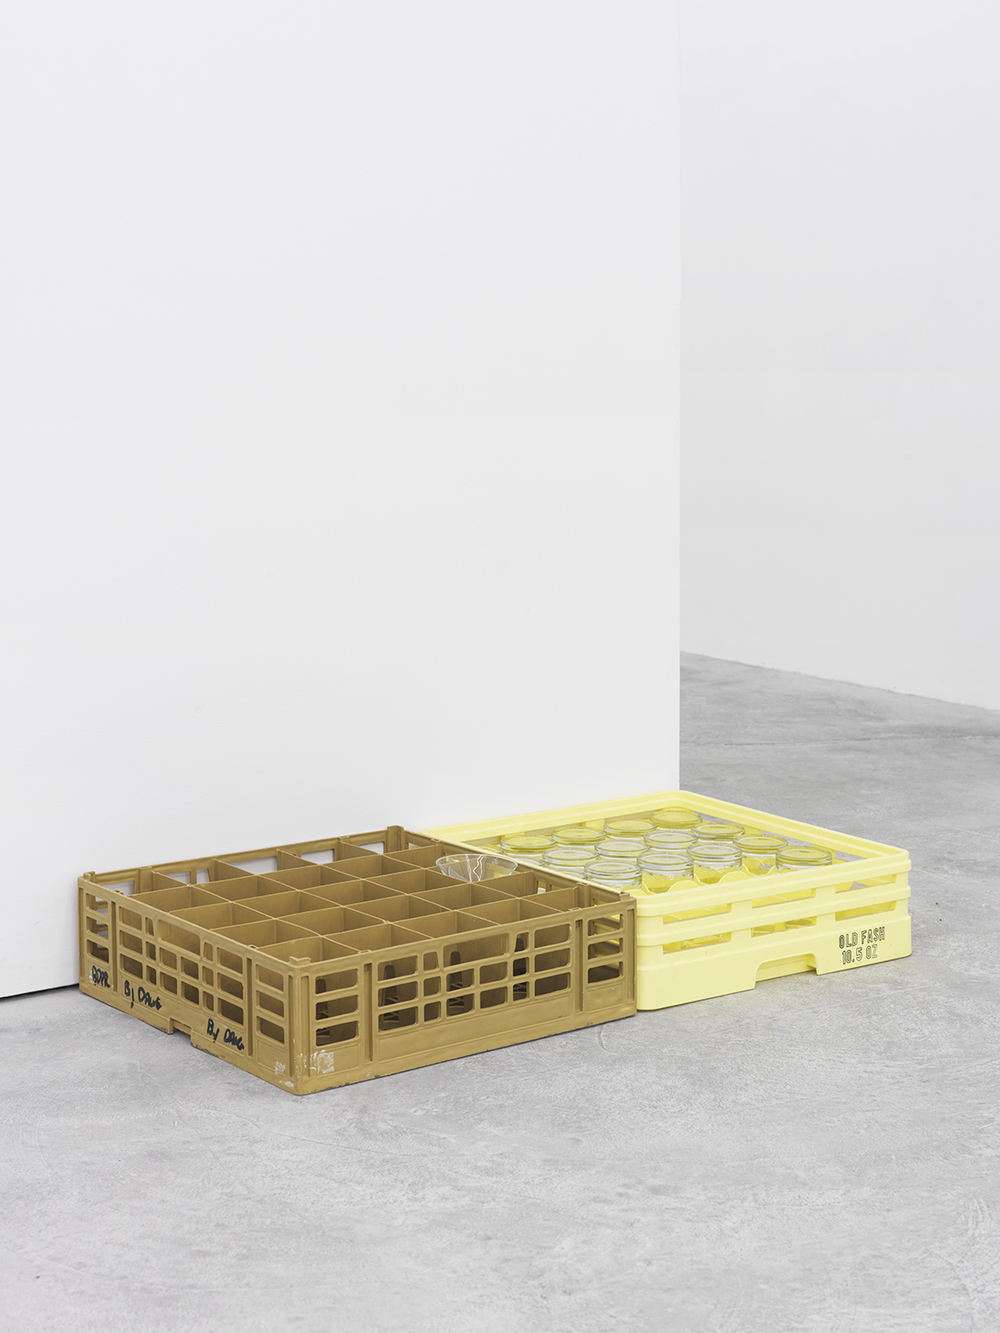 untitled crate stack, 2015 Event hire crates and glasses Dimensions variable